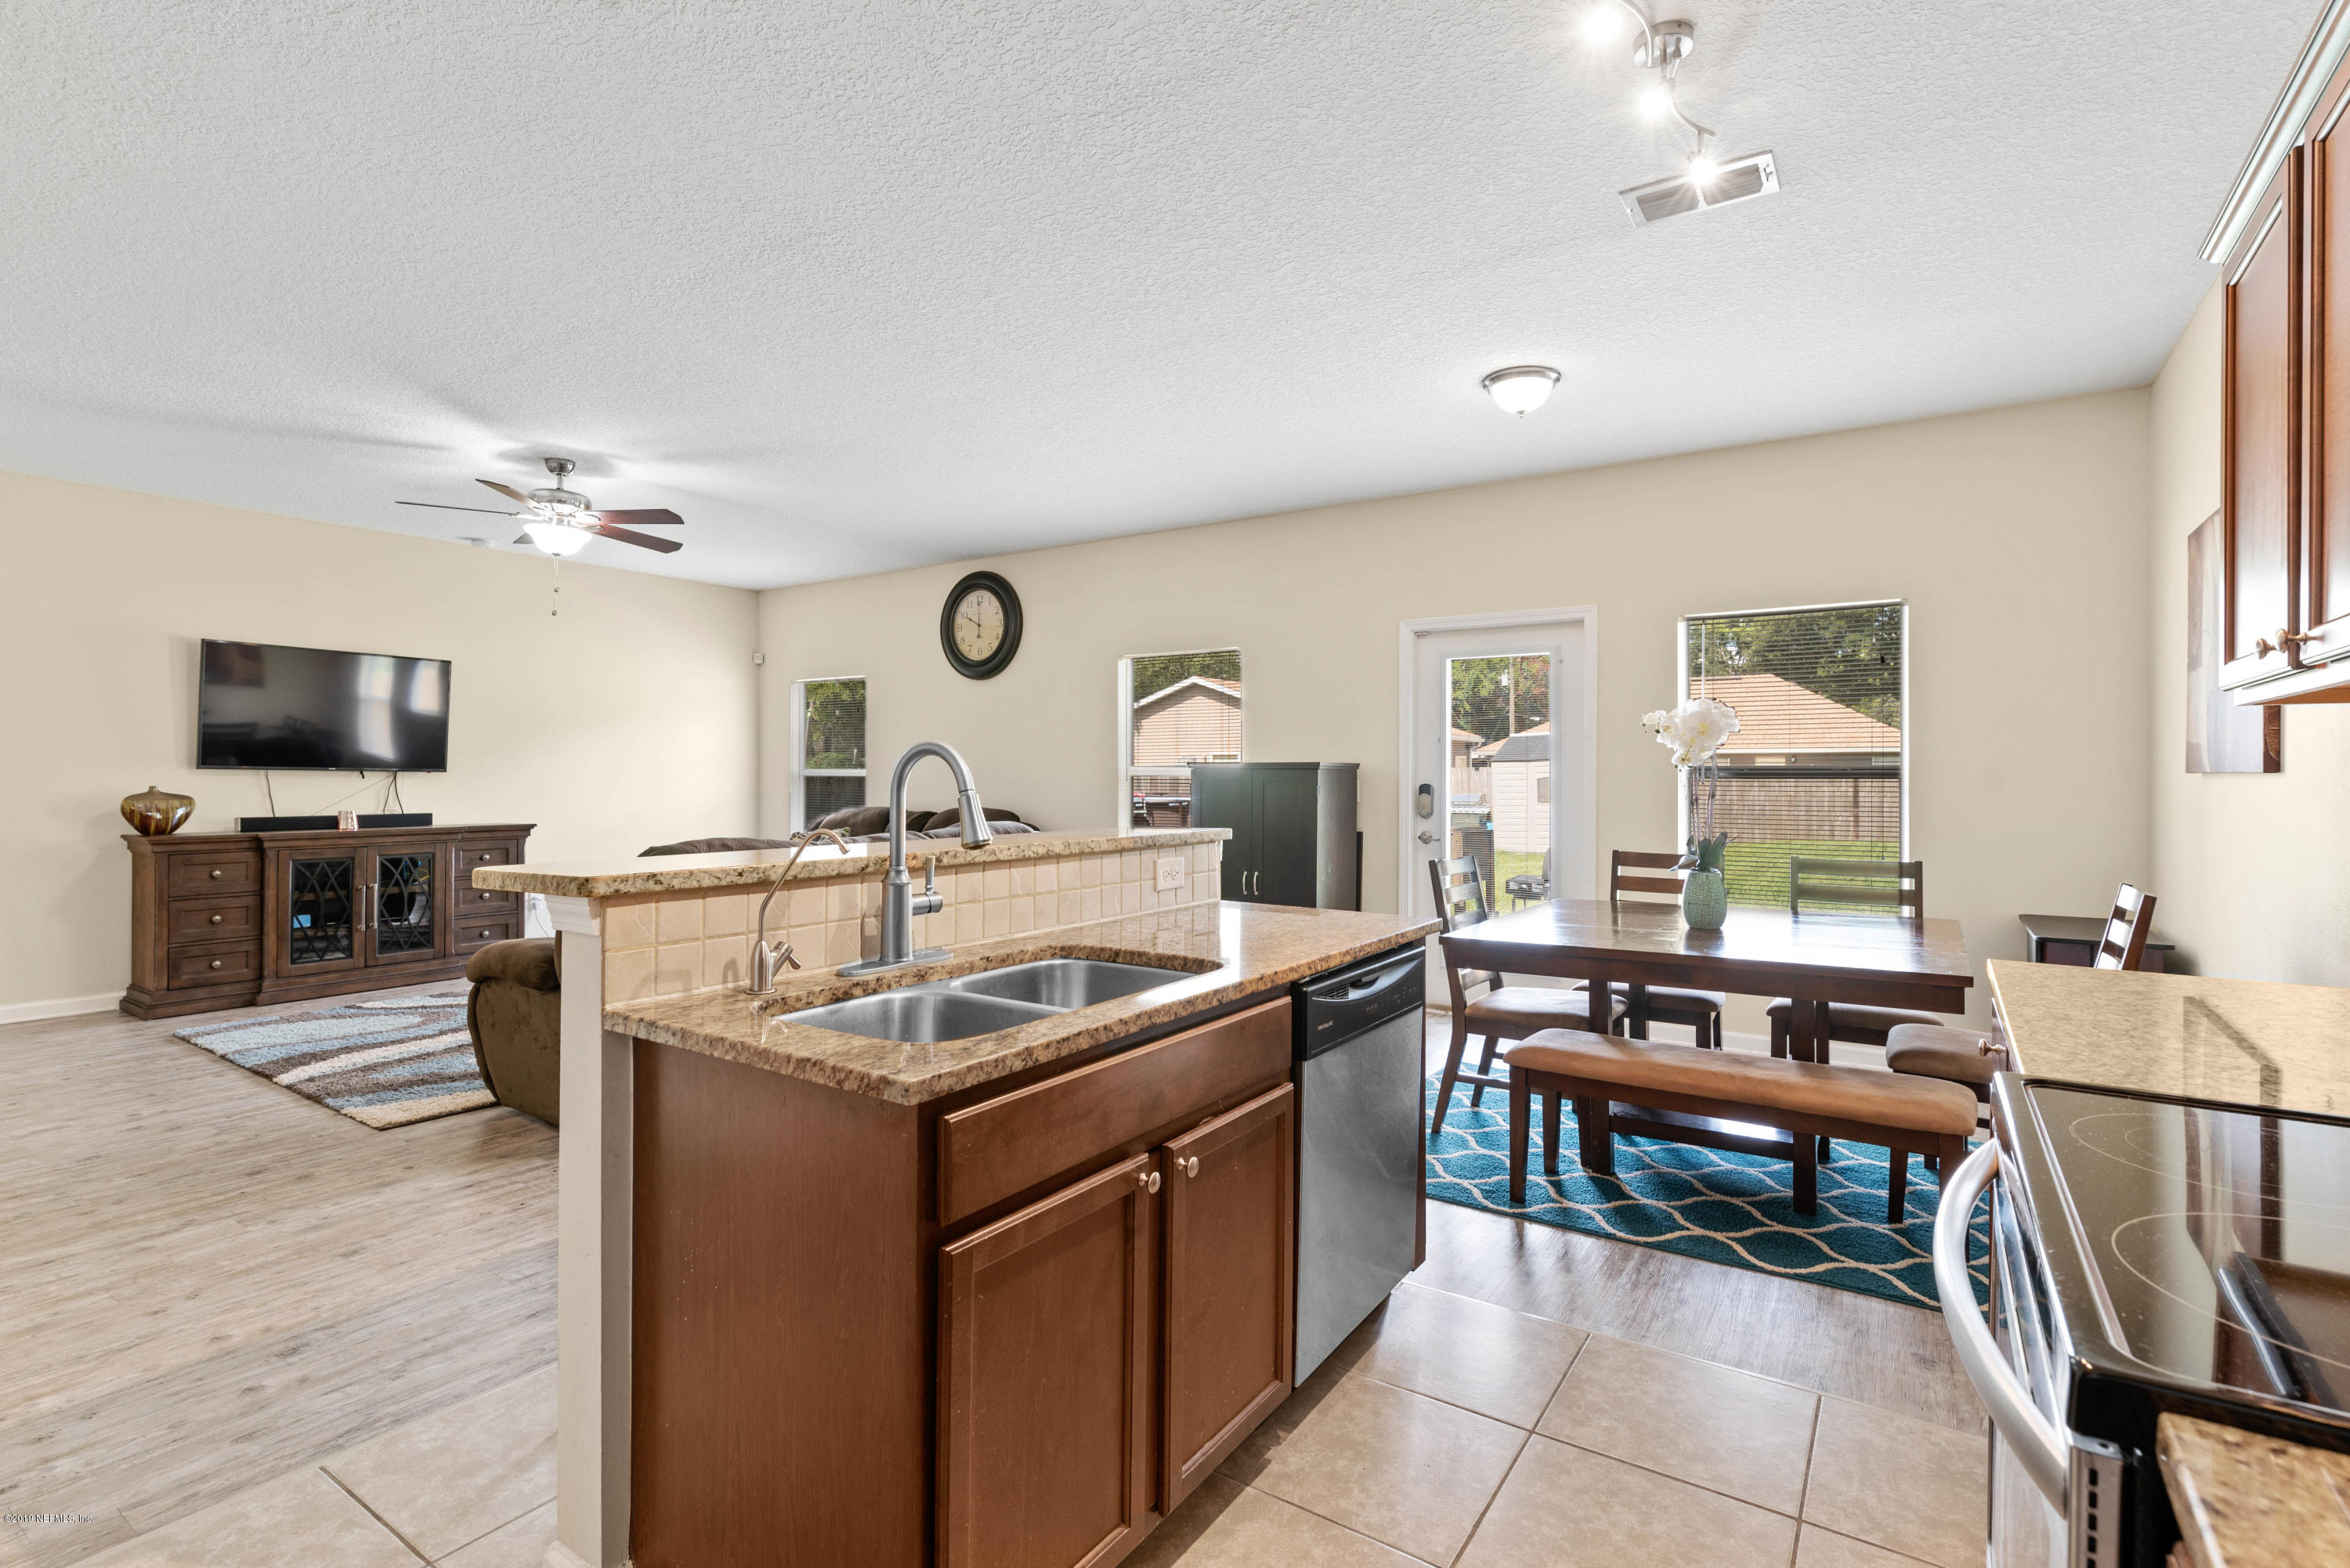 950 STATE ROAD 13 FRUIT COVE - 10